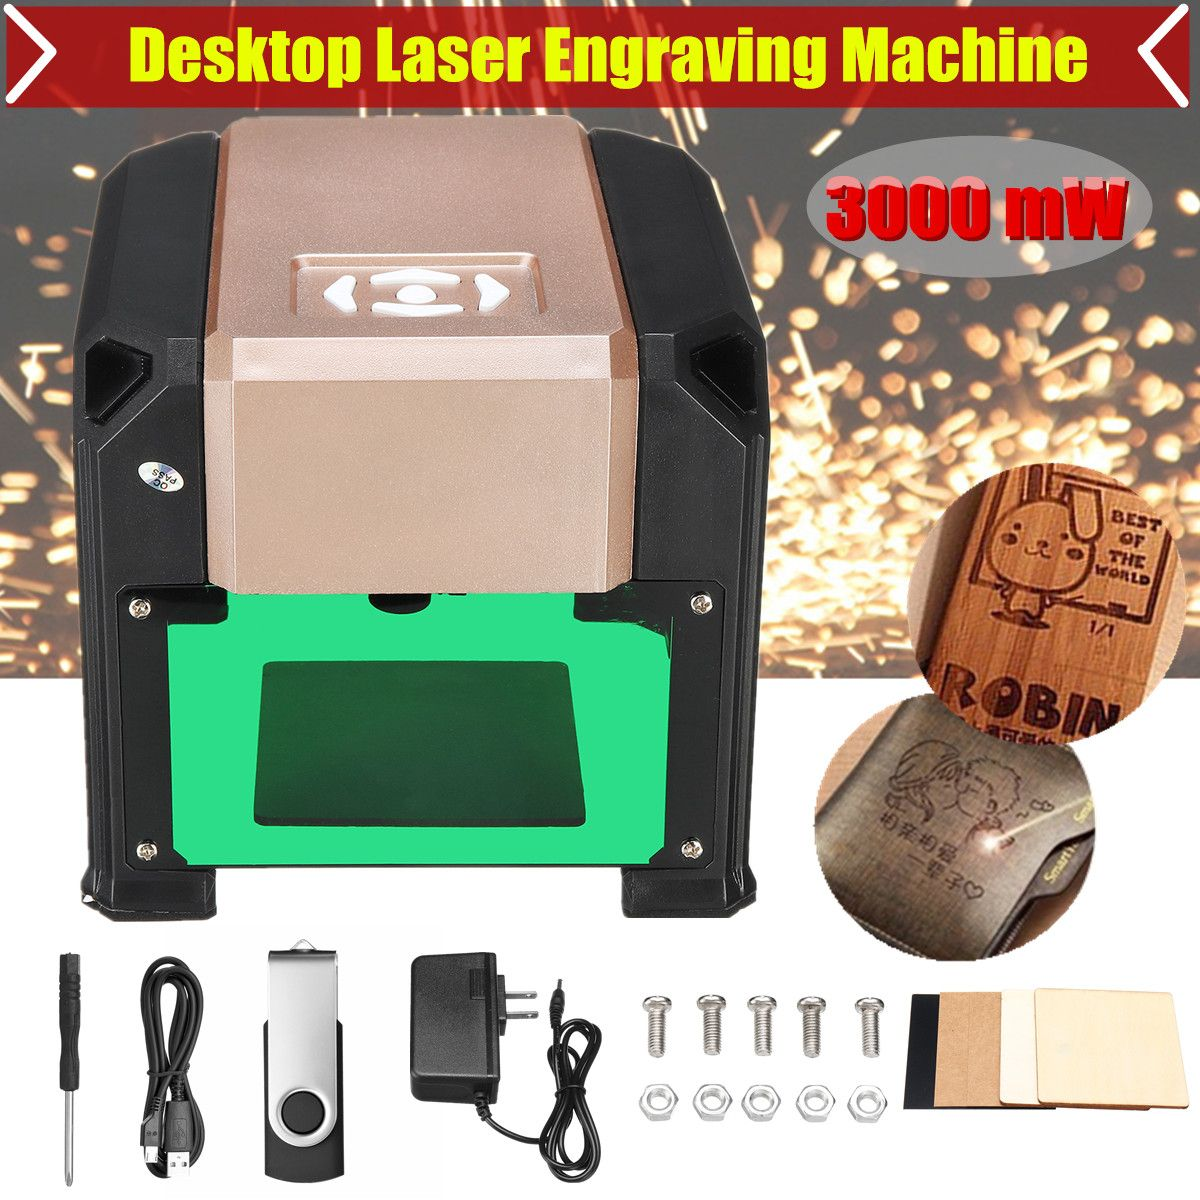 3000 mw USB Desktop Laser Gravur Maschine DIY Mark Drucker Cutter Holz Router CNC Laser Carving Maschine Stecher Palette 80 x 80mm